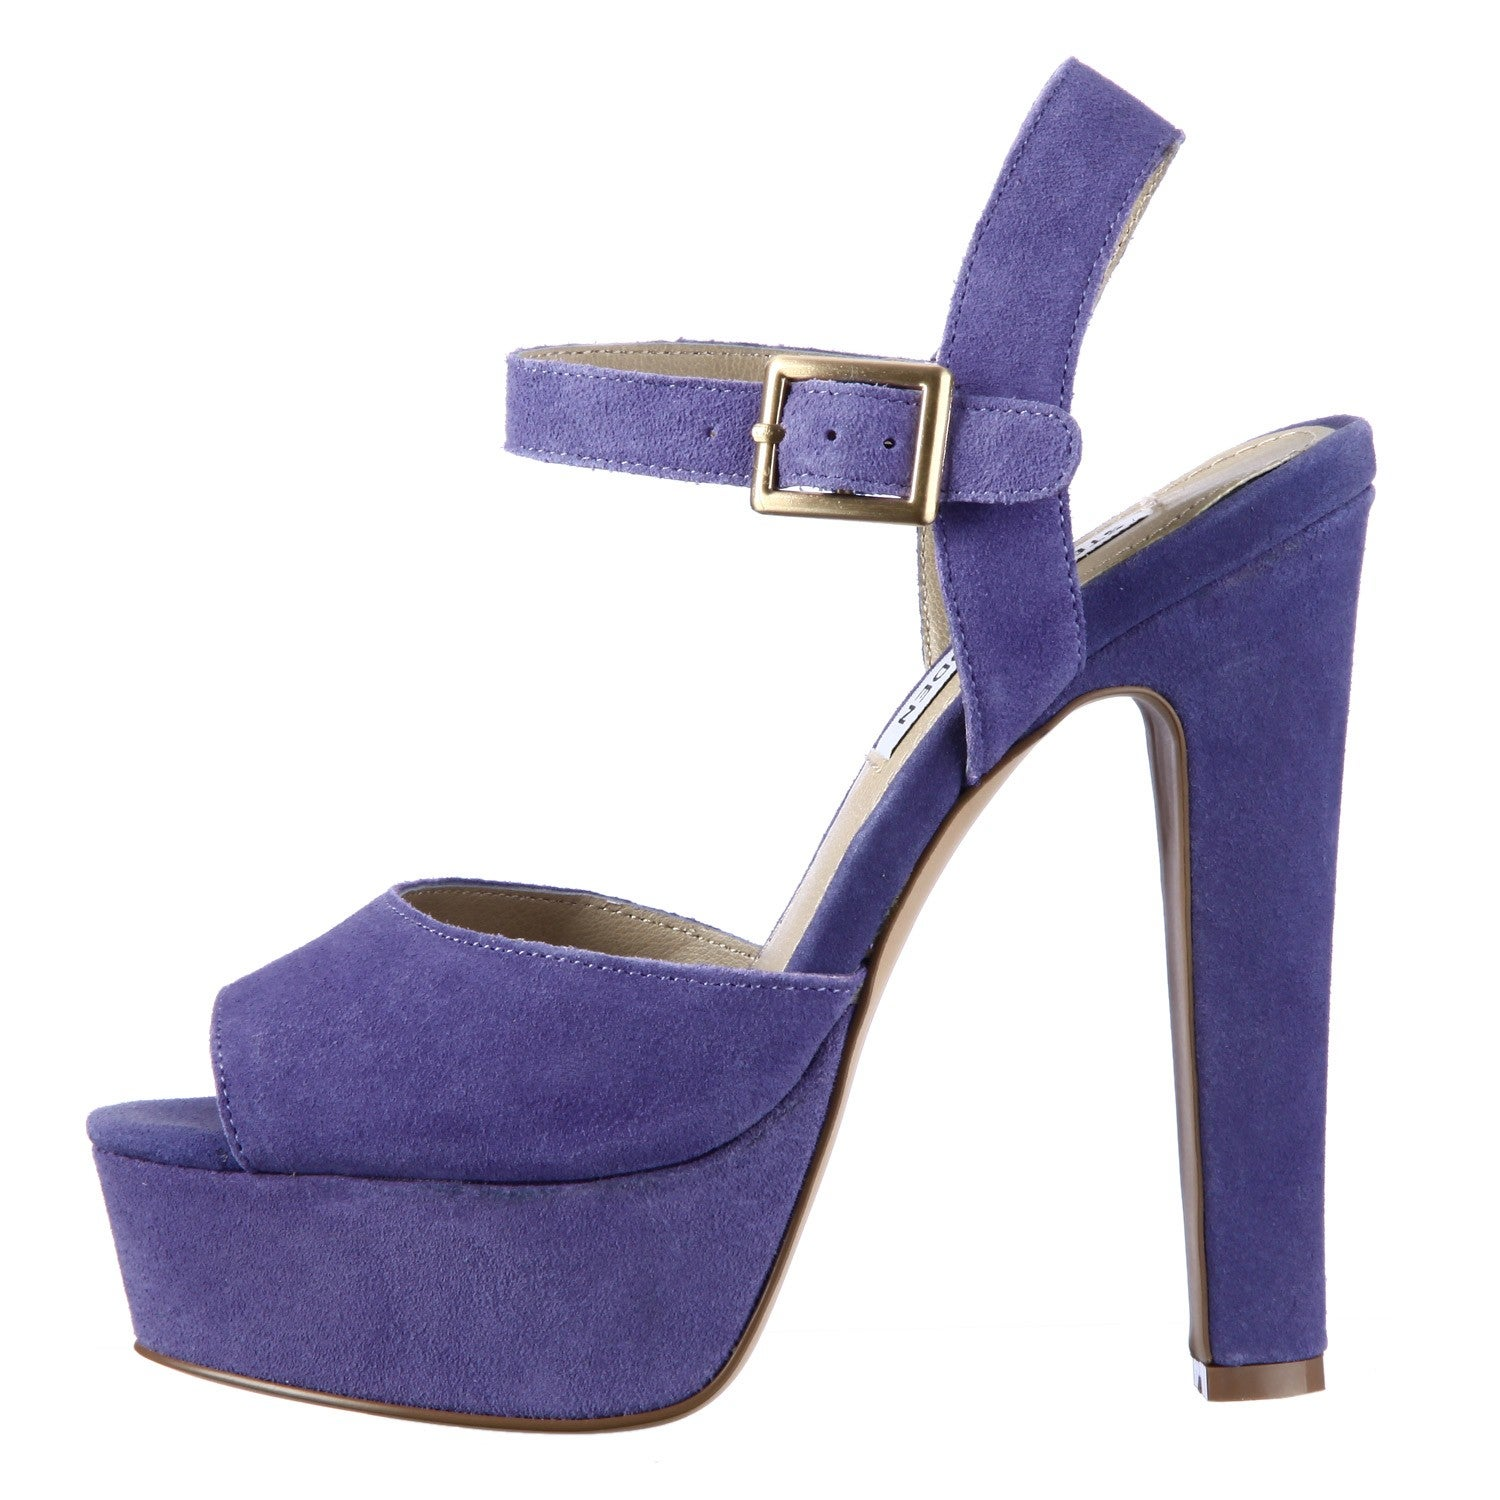 c46d5459679 Shop Steve Madden Women s Lavender Platform Pumps - Free Shipping On ...